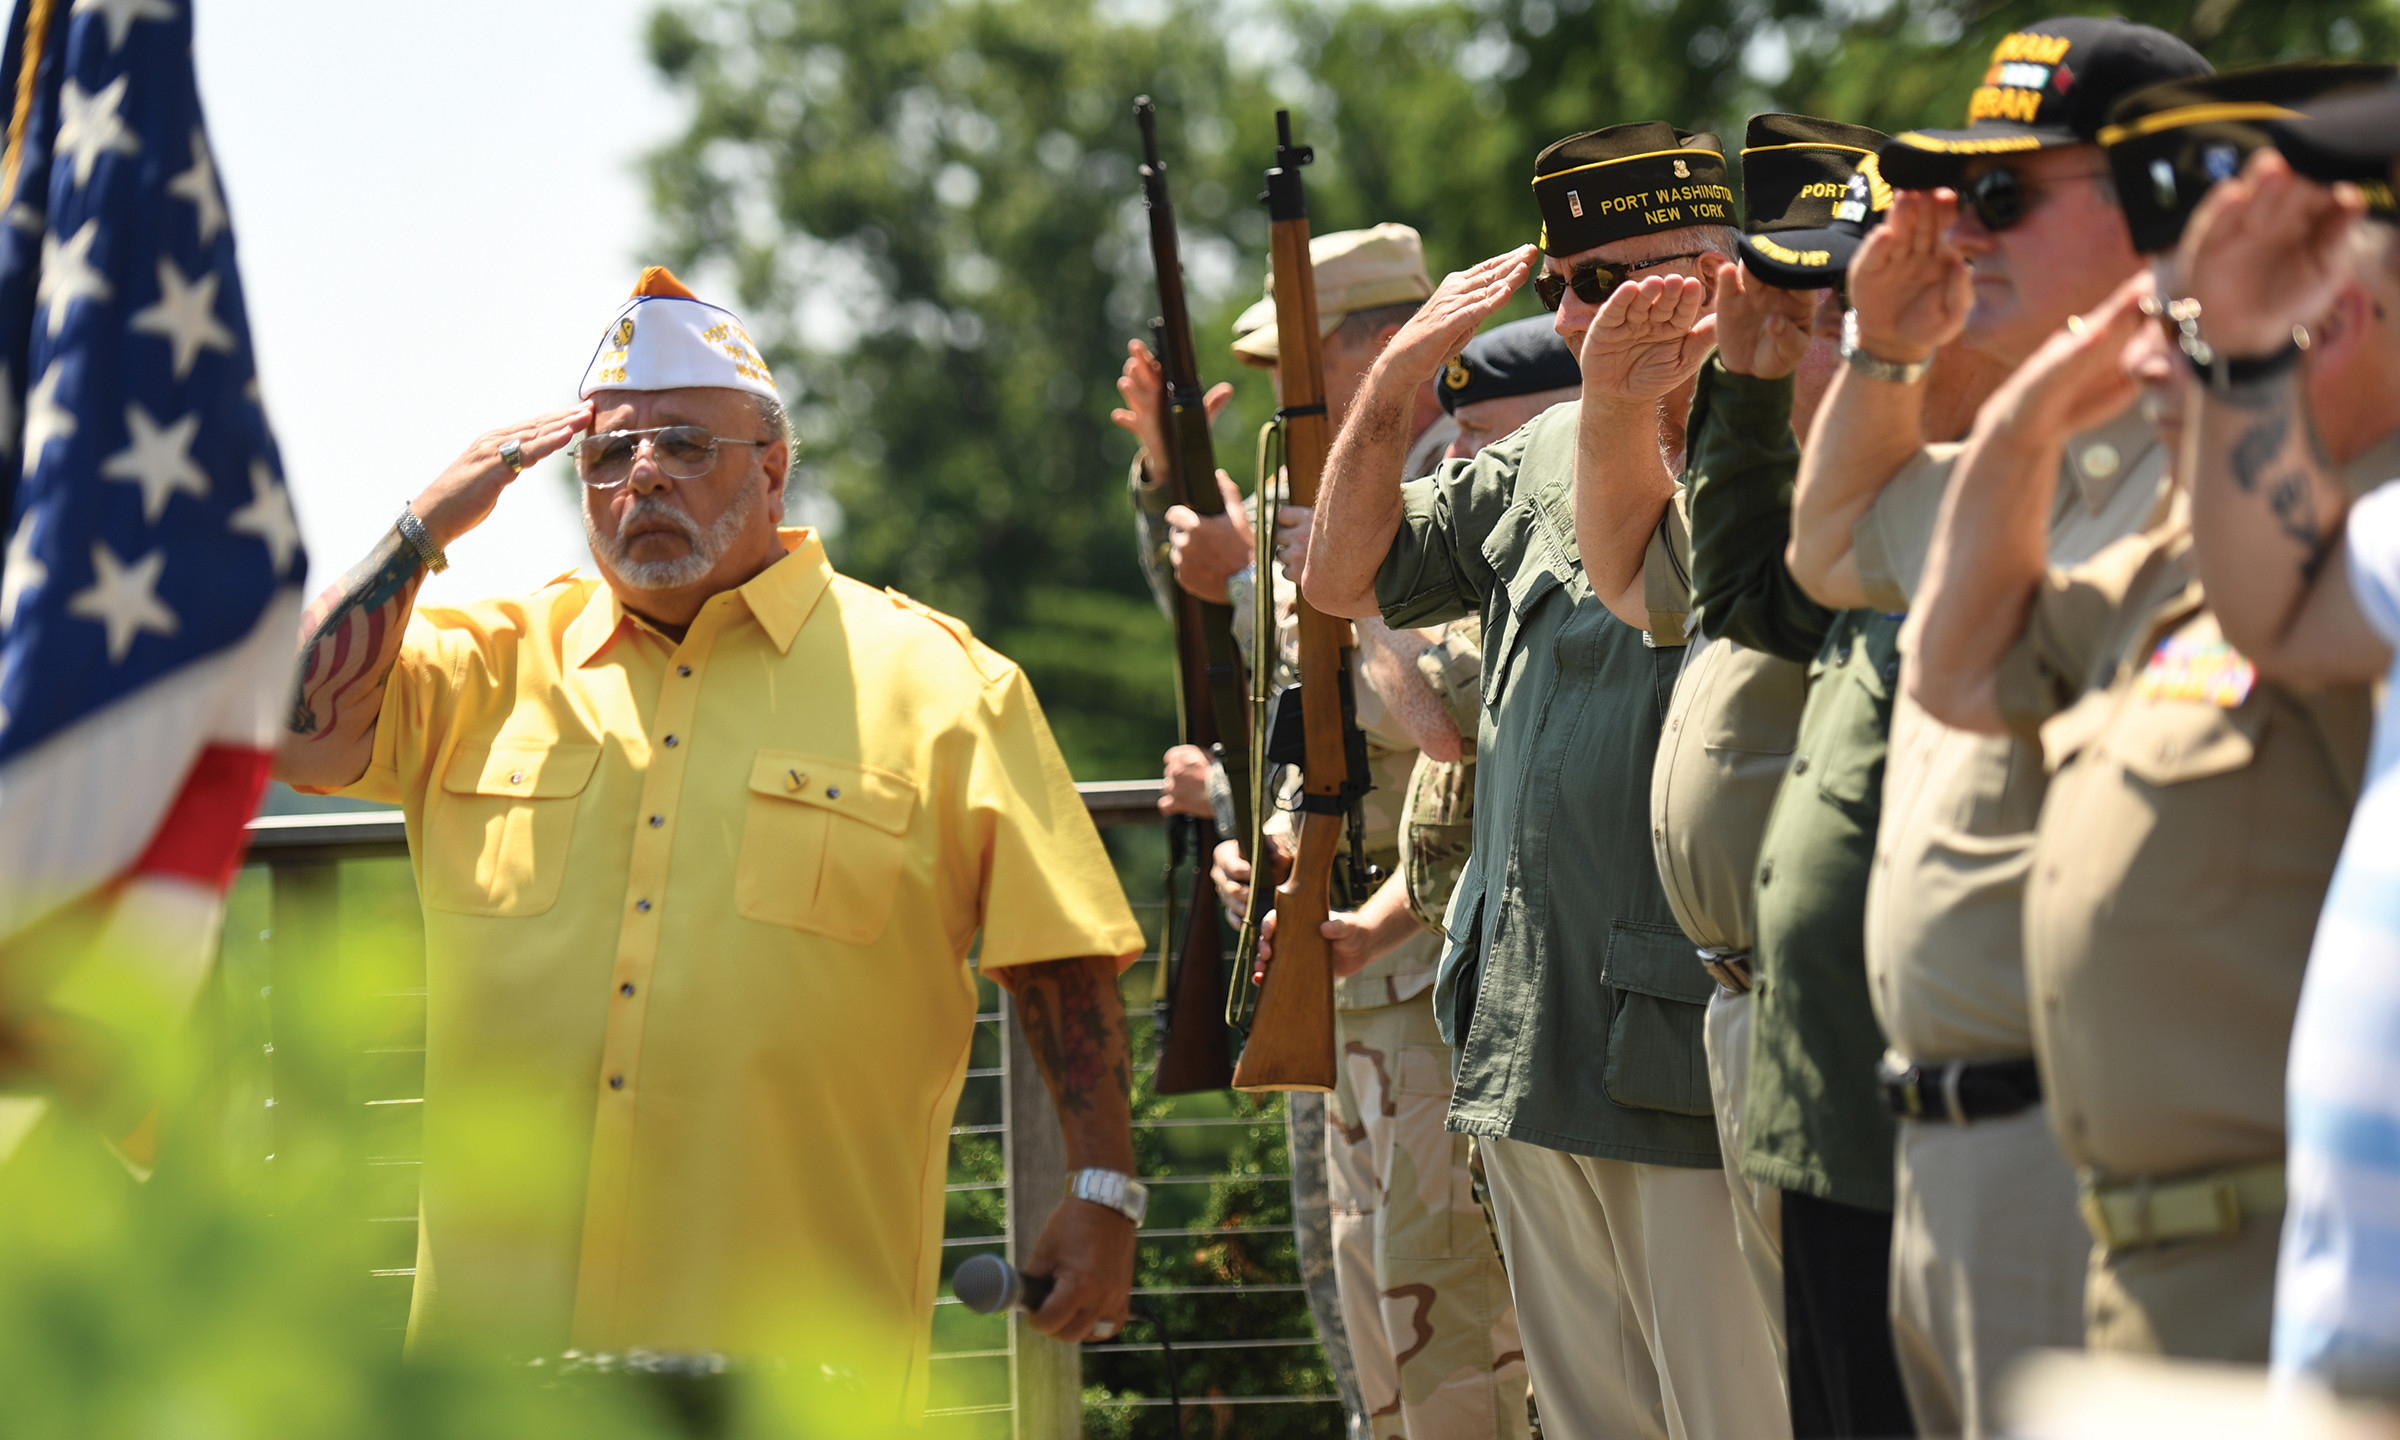 VFW Post 1819, Port Washington, performs opening ceremony and salute to kick off Skyline's 10th Annual Charitable Golf Classic.